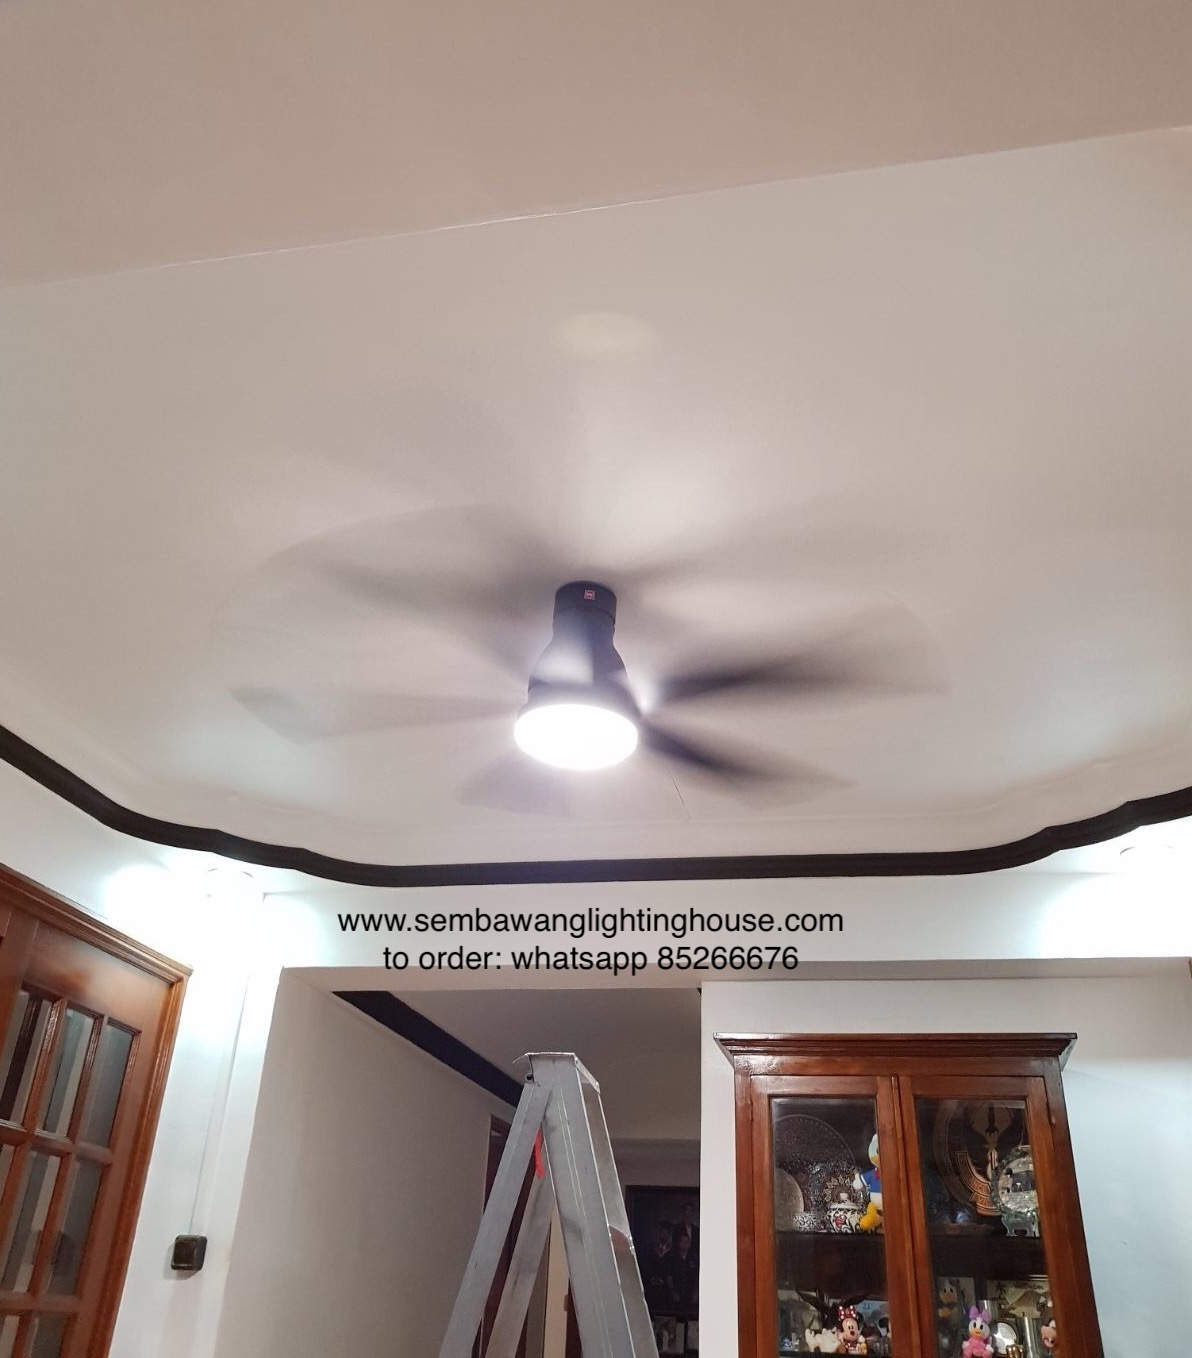 KDK U60FW Ceiling Fan Black Sample at Living Room